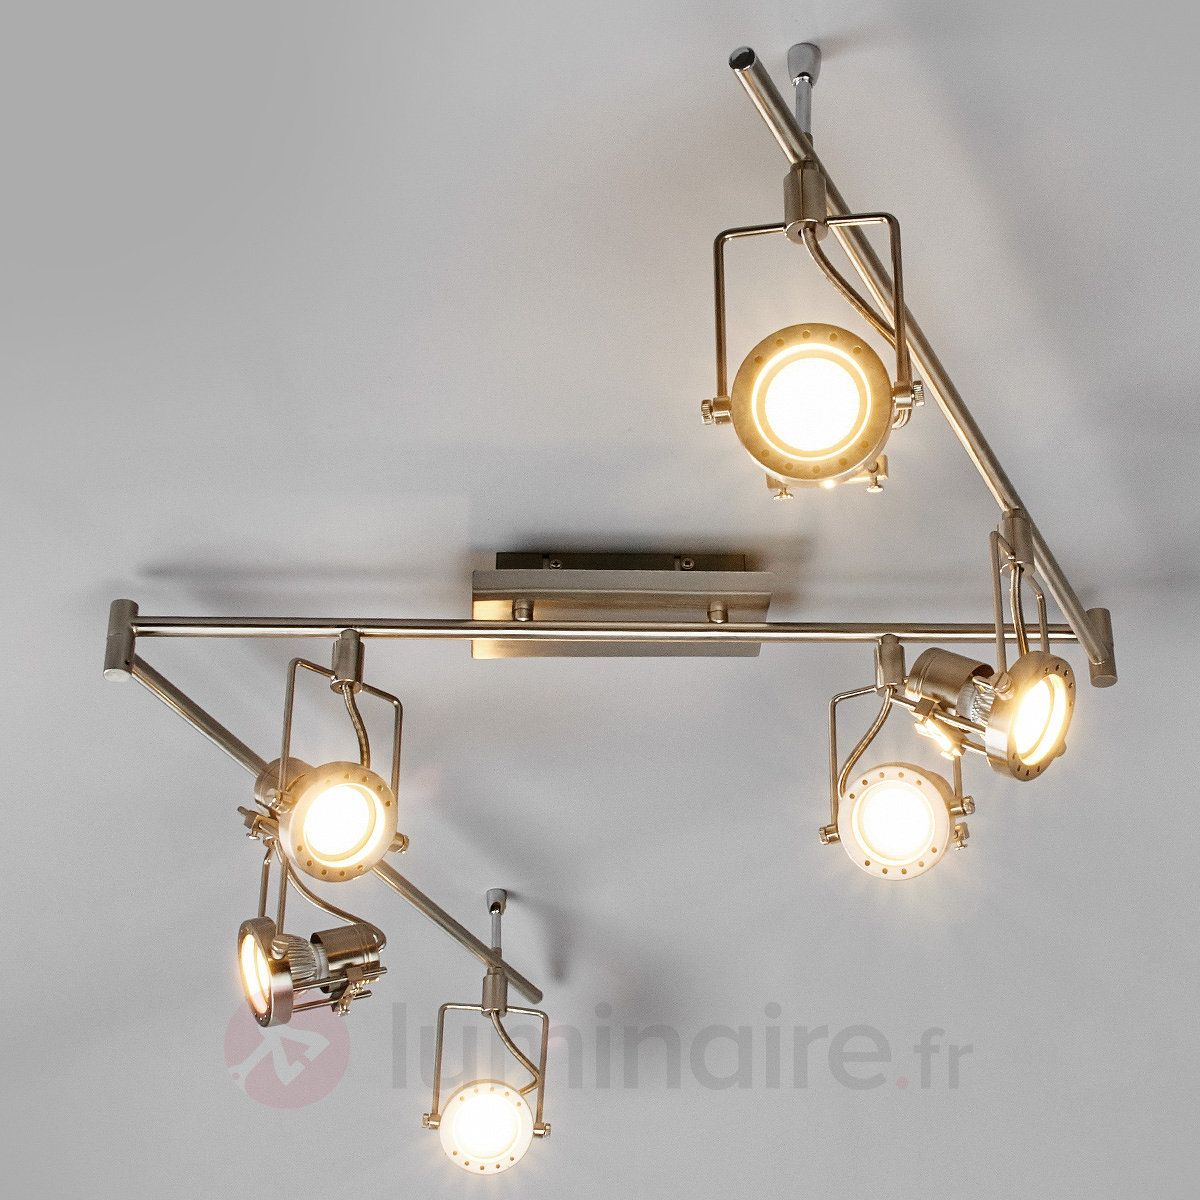 Plafonnier 6 Spots Led Plafonnier Spot Led Agidio à 6 Lampes Bathroom Lights